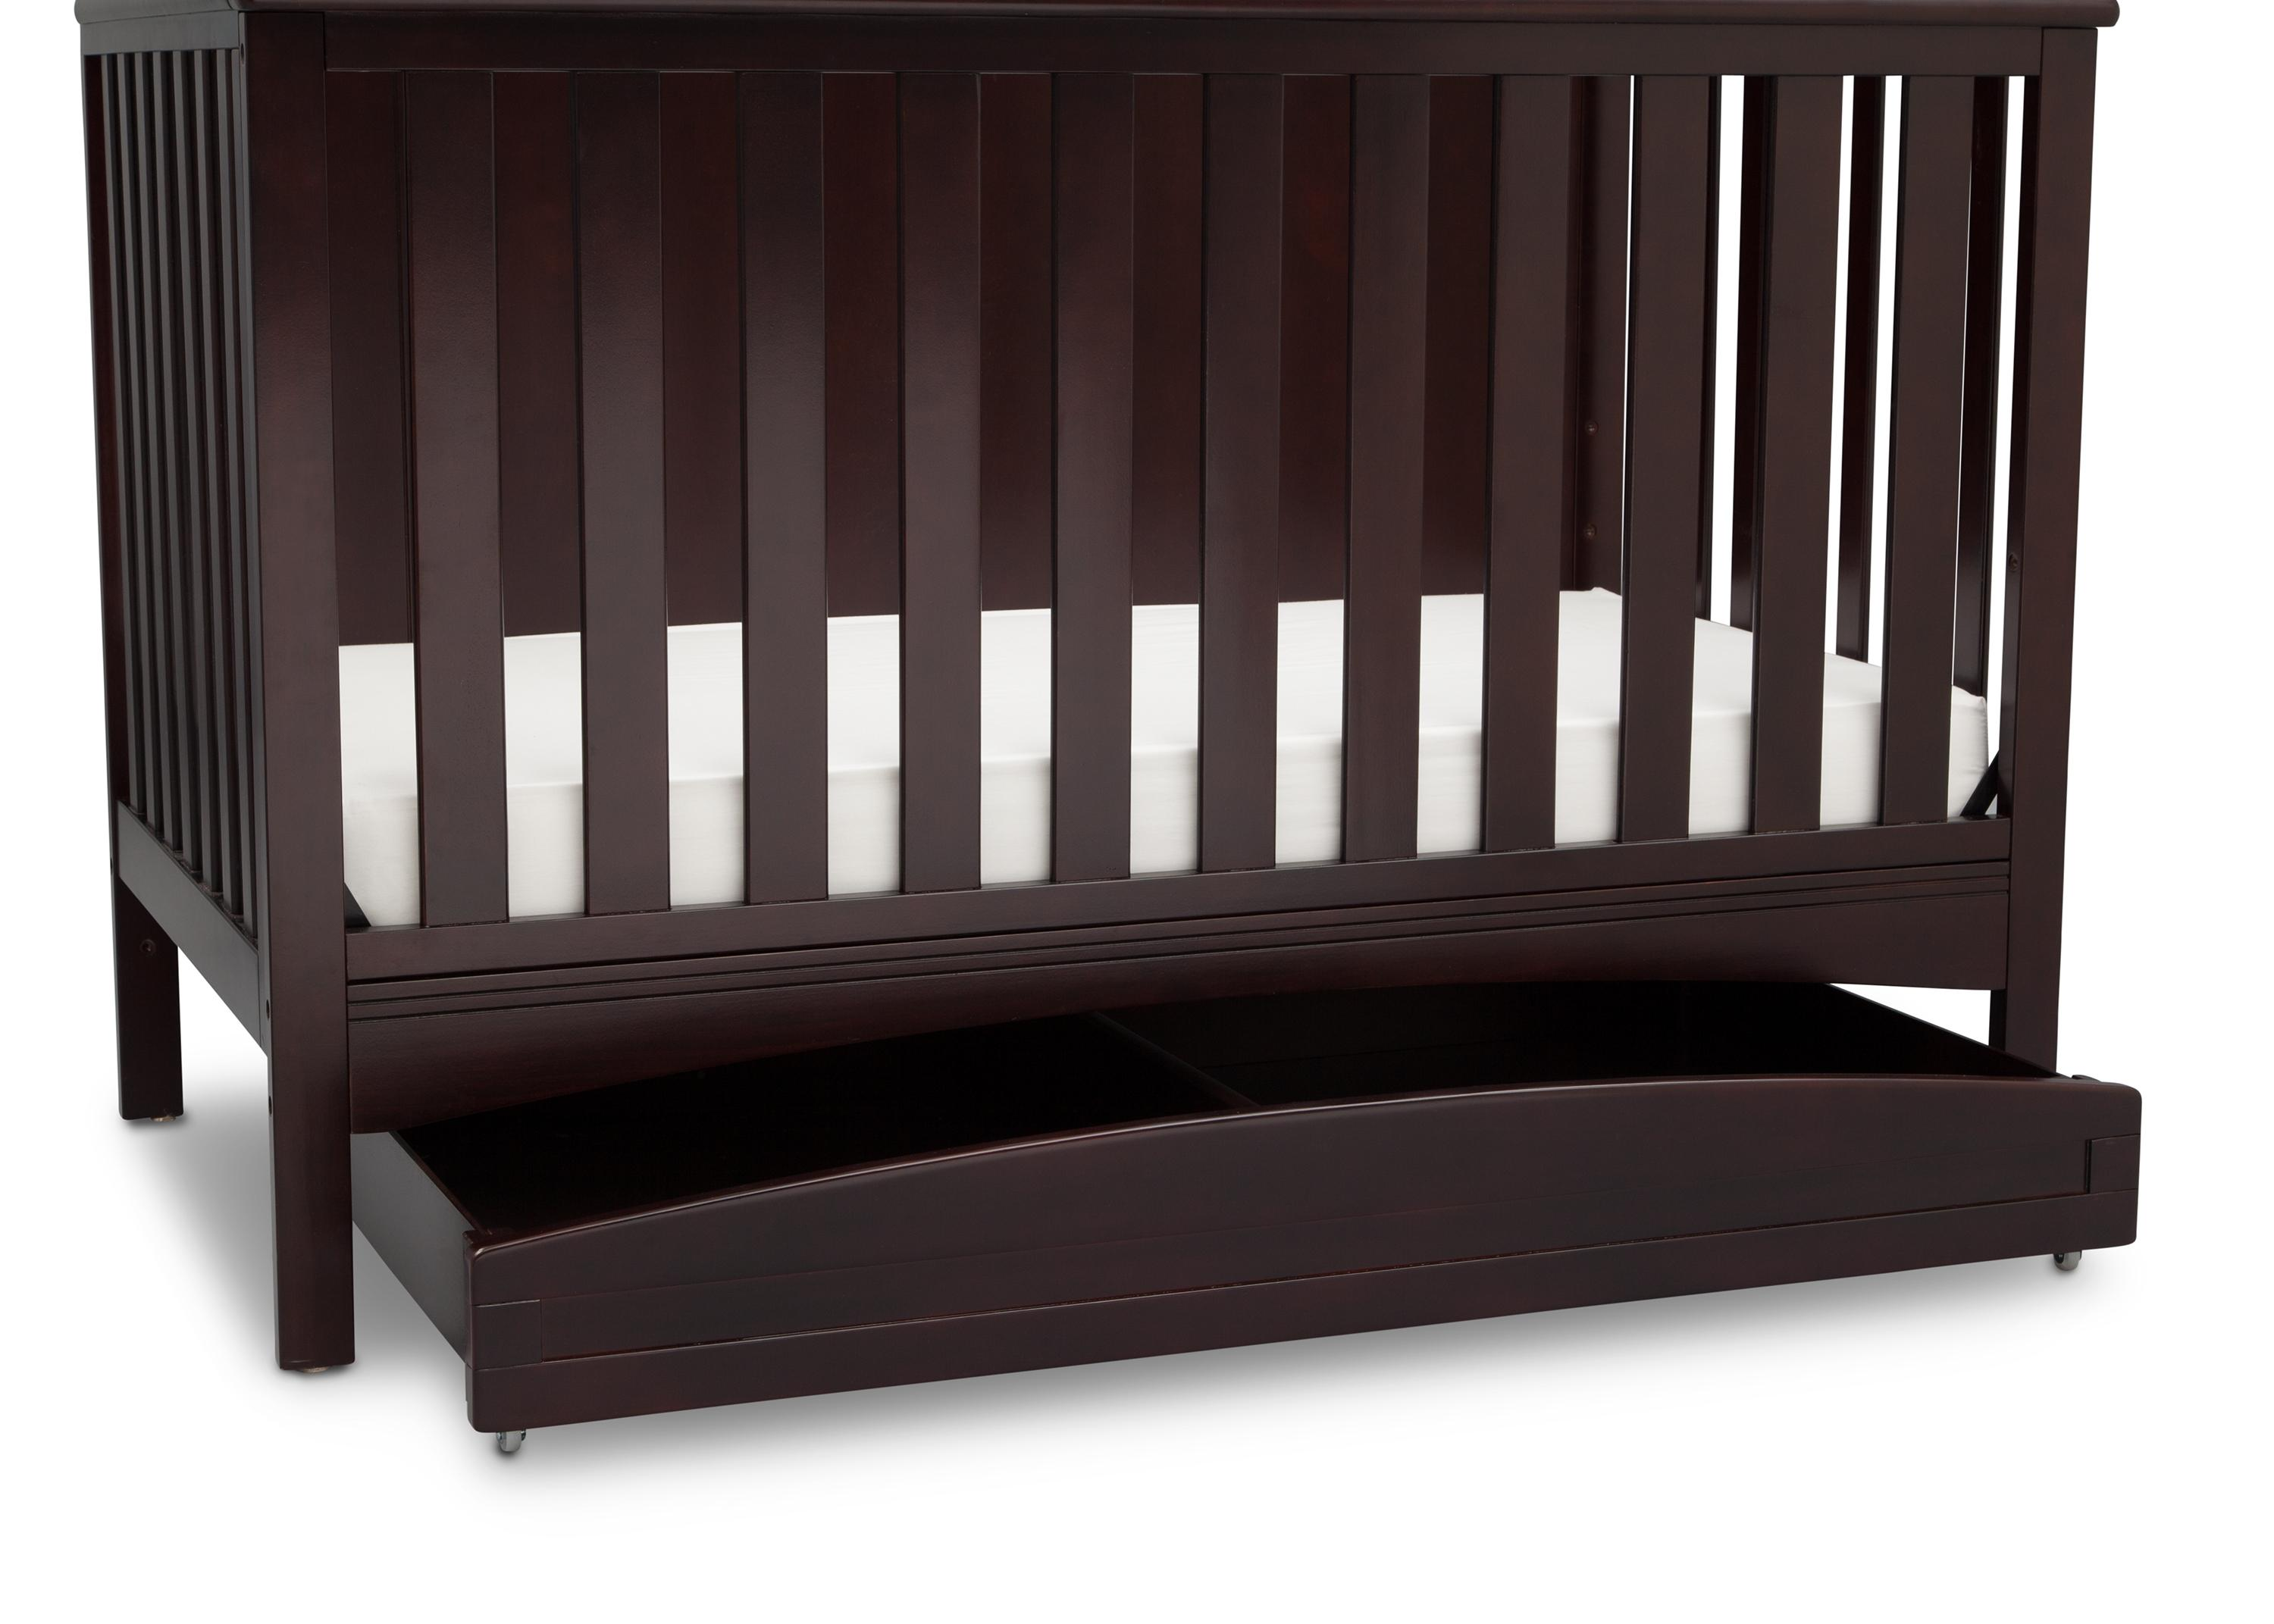 crib shipping babyletto toddler through with overstock cribs kit modo home bed product pine in convertible wood free conversion today garden see